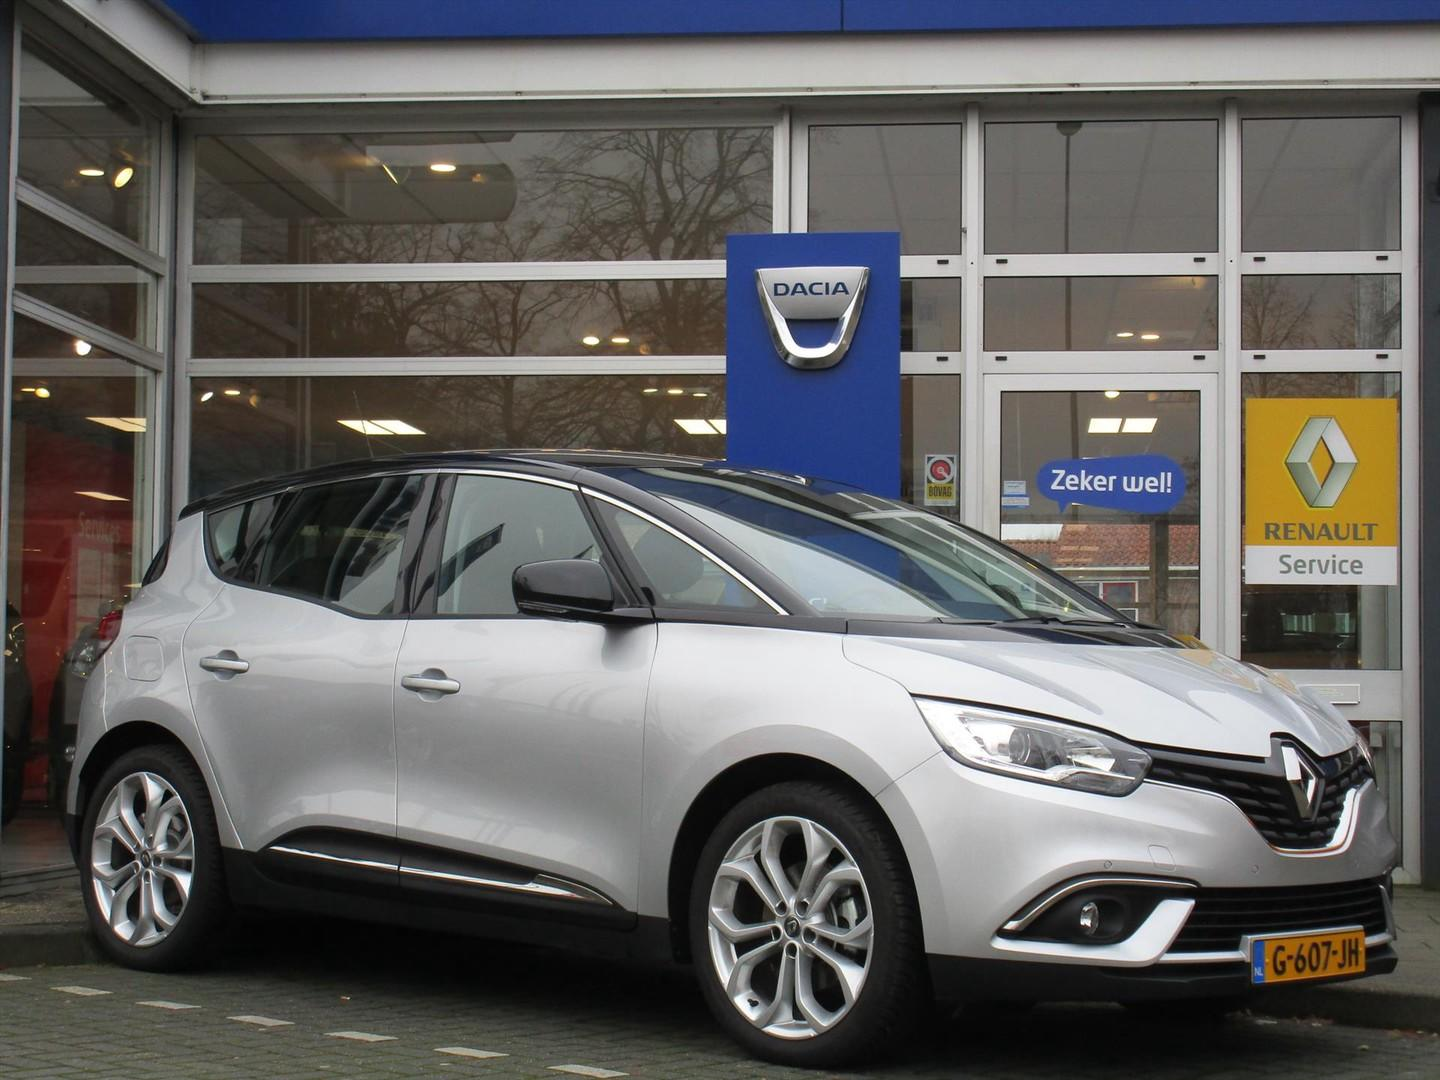 Renault Scénic 140 tce edc limited * automaat* fin va.3,9%